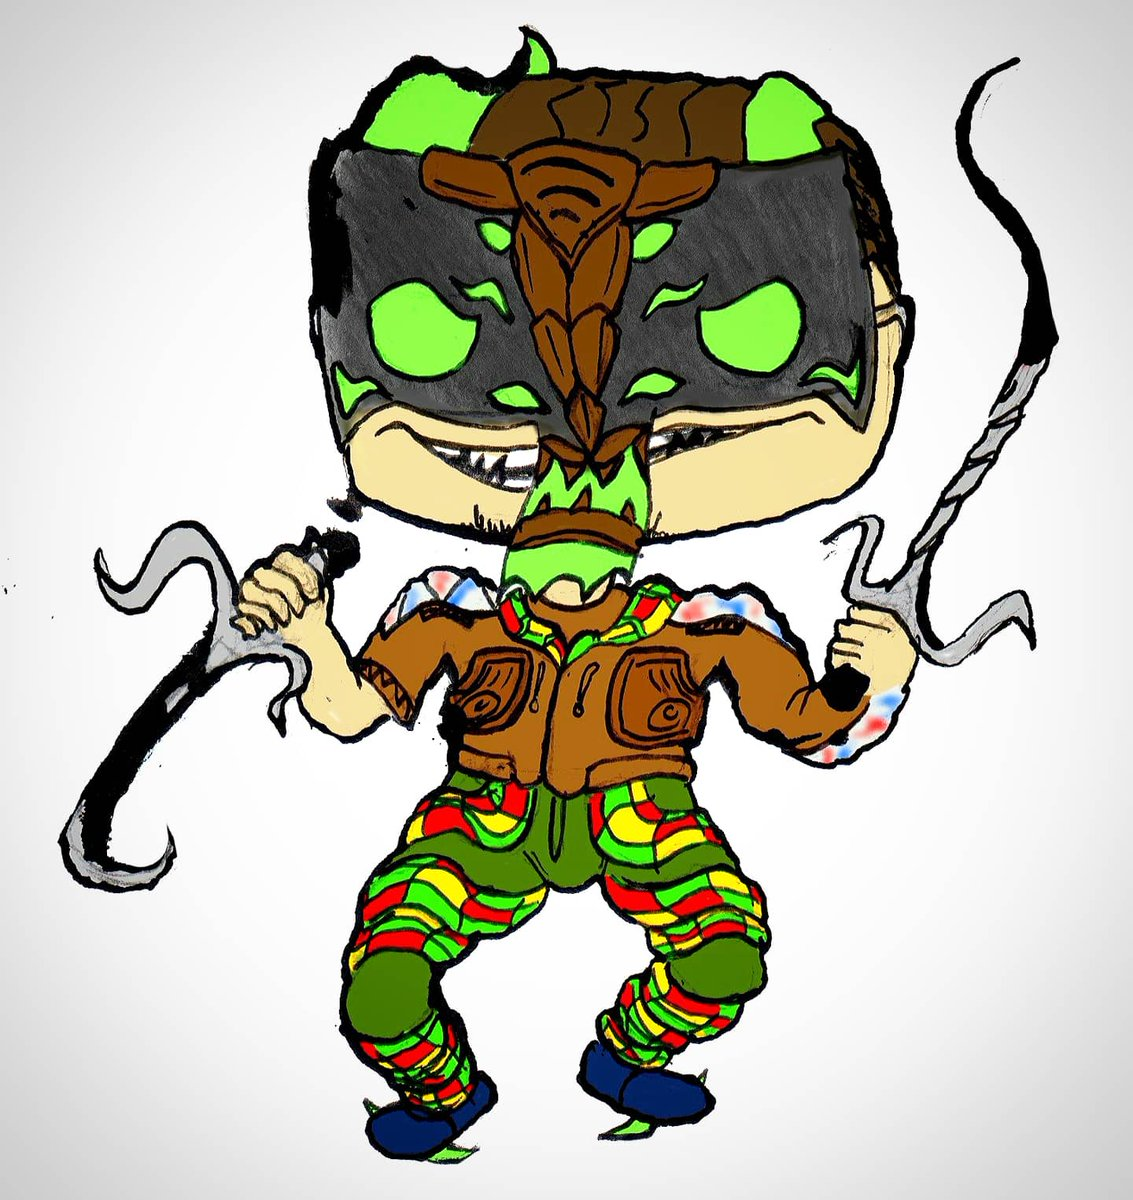 Are #FunkoPops still cool, lool? Then herewego   (The #Filipino merc, Code: IRRITANT) pic.twitter.com/KClbMGOxME